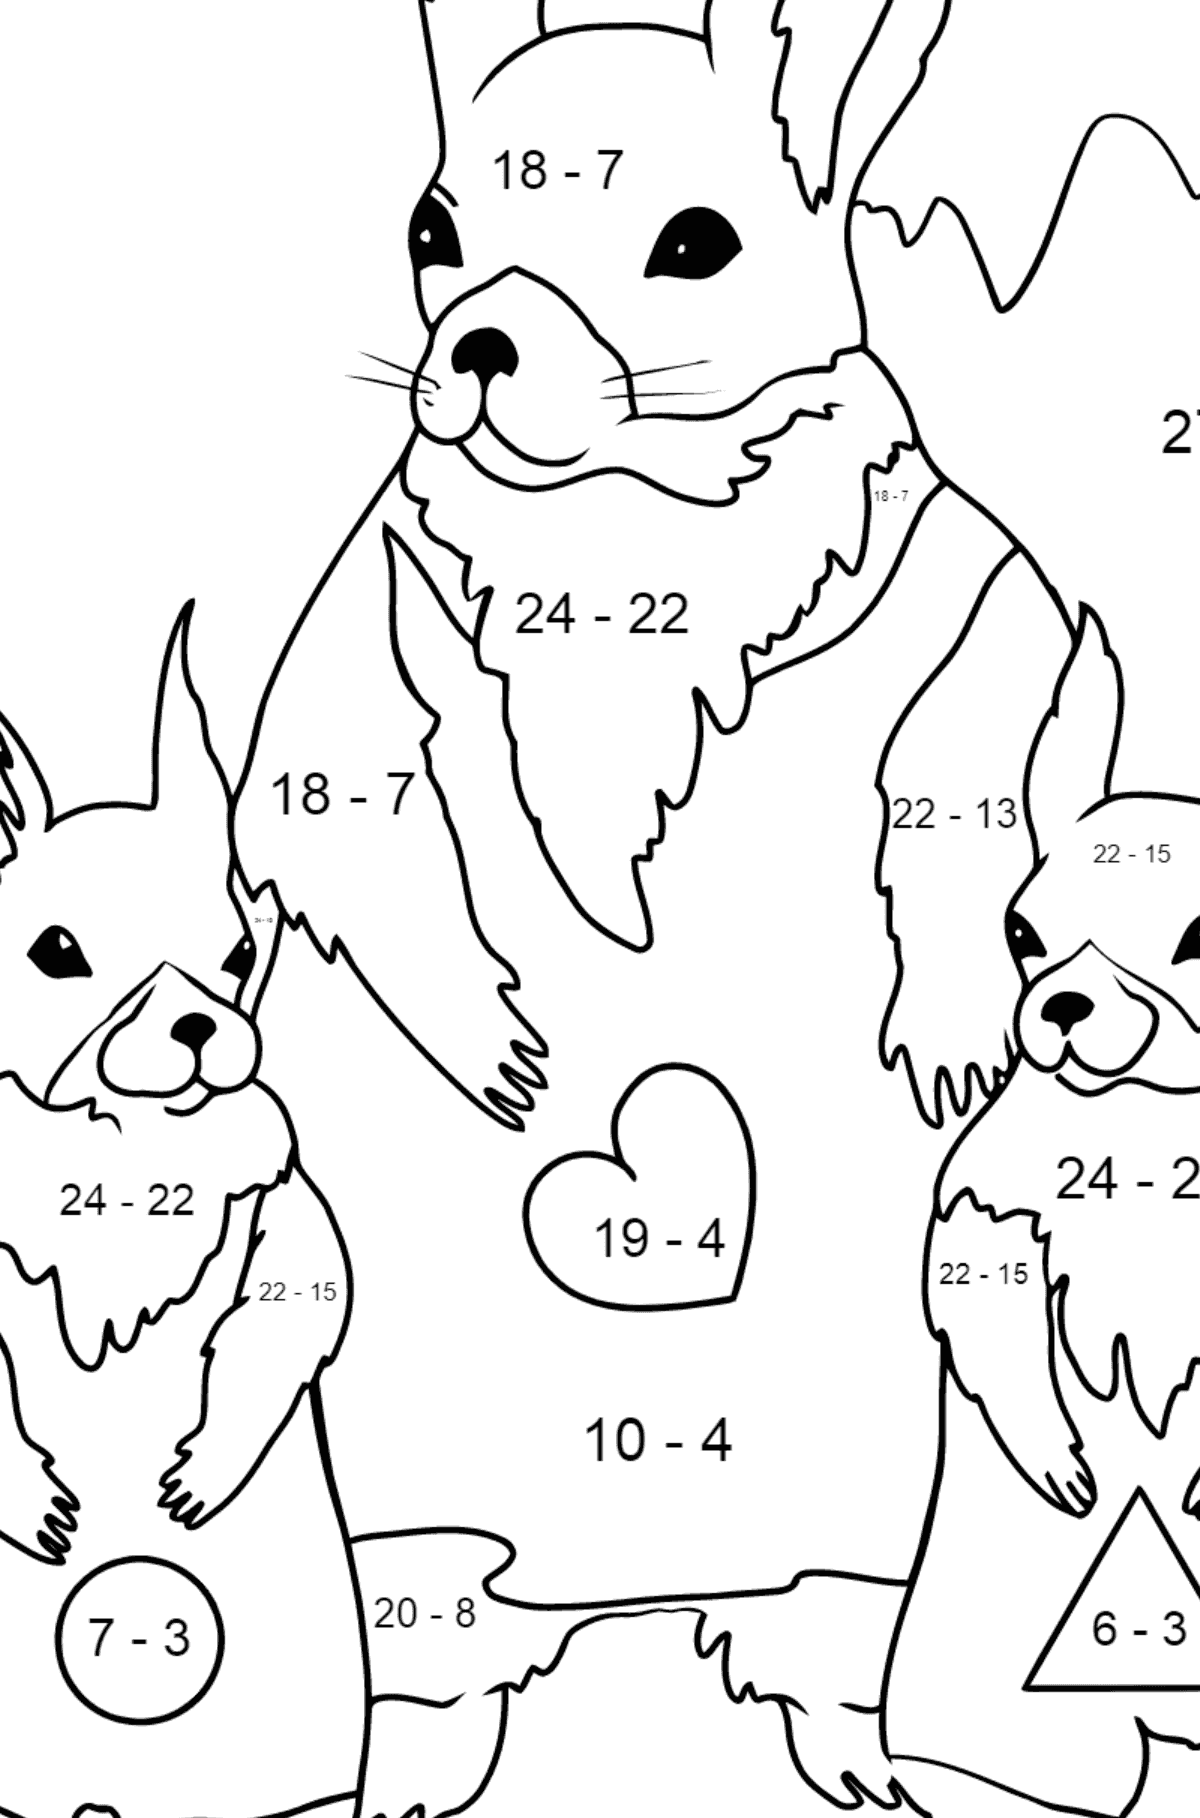 Spring Coloring Page - Beautiful Squirrels for Kids  - Color by Number Substraction